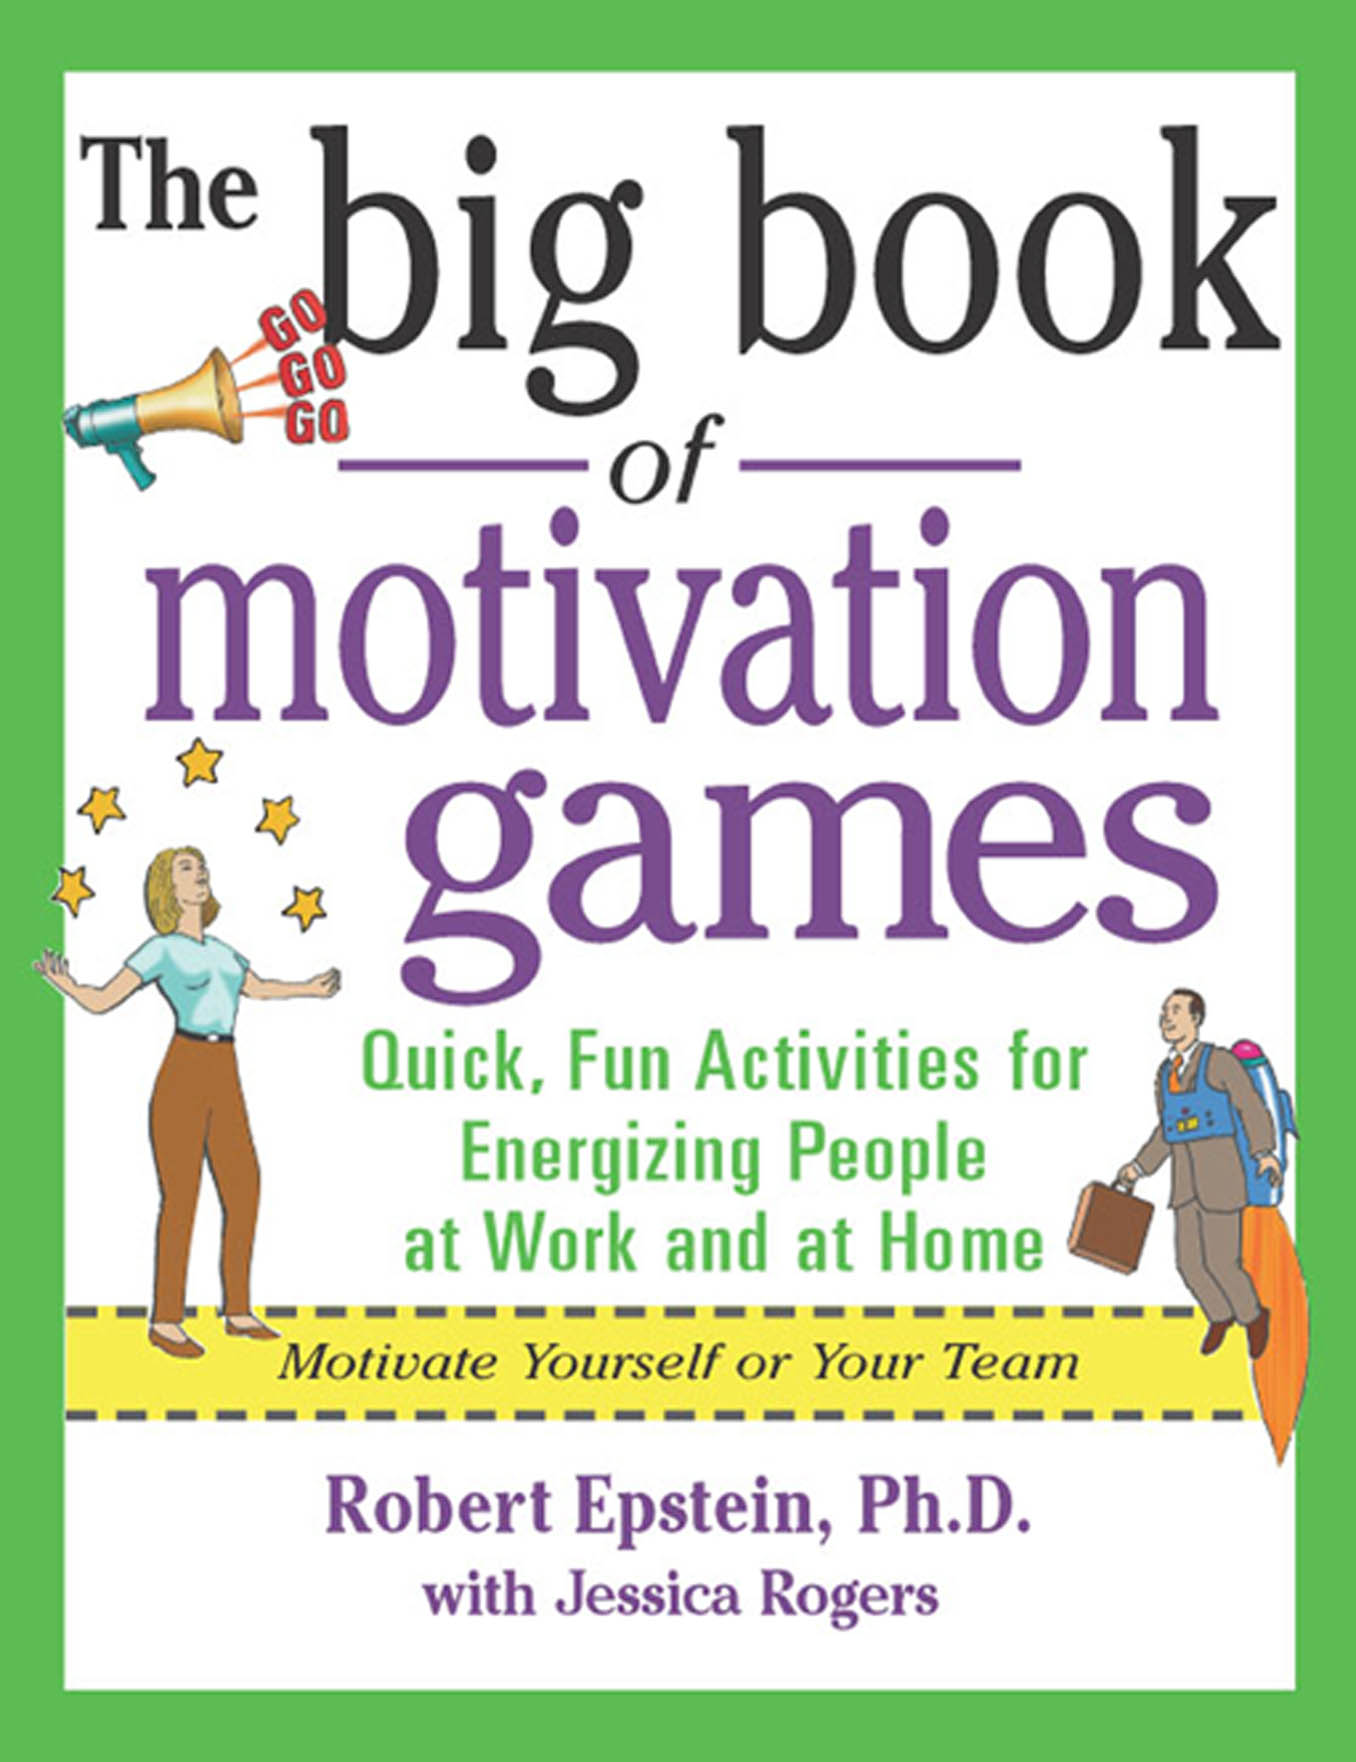 Download Ebook The Big Book of Motivation Games by Robert Epstein Pdf